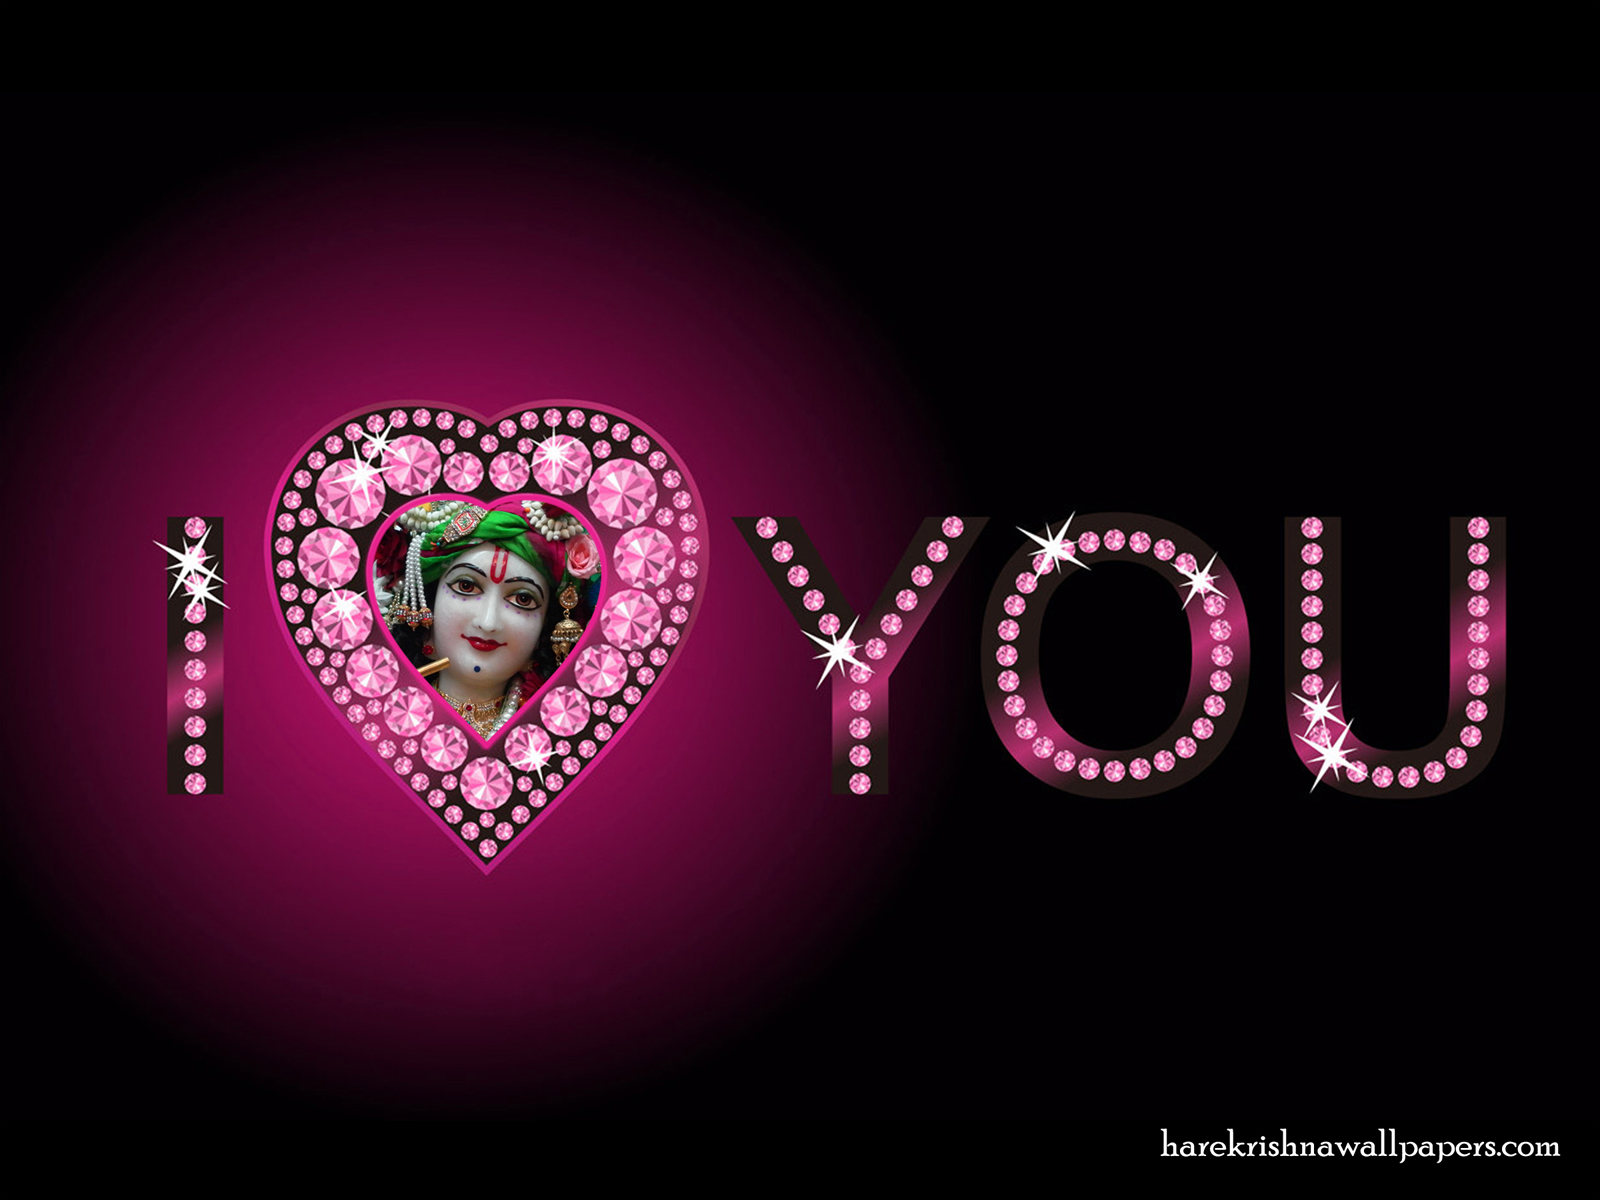 I Love You Giridhari Wallpaper (009) Size1600x1200 Download